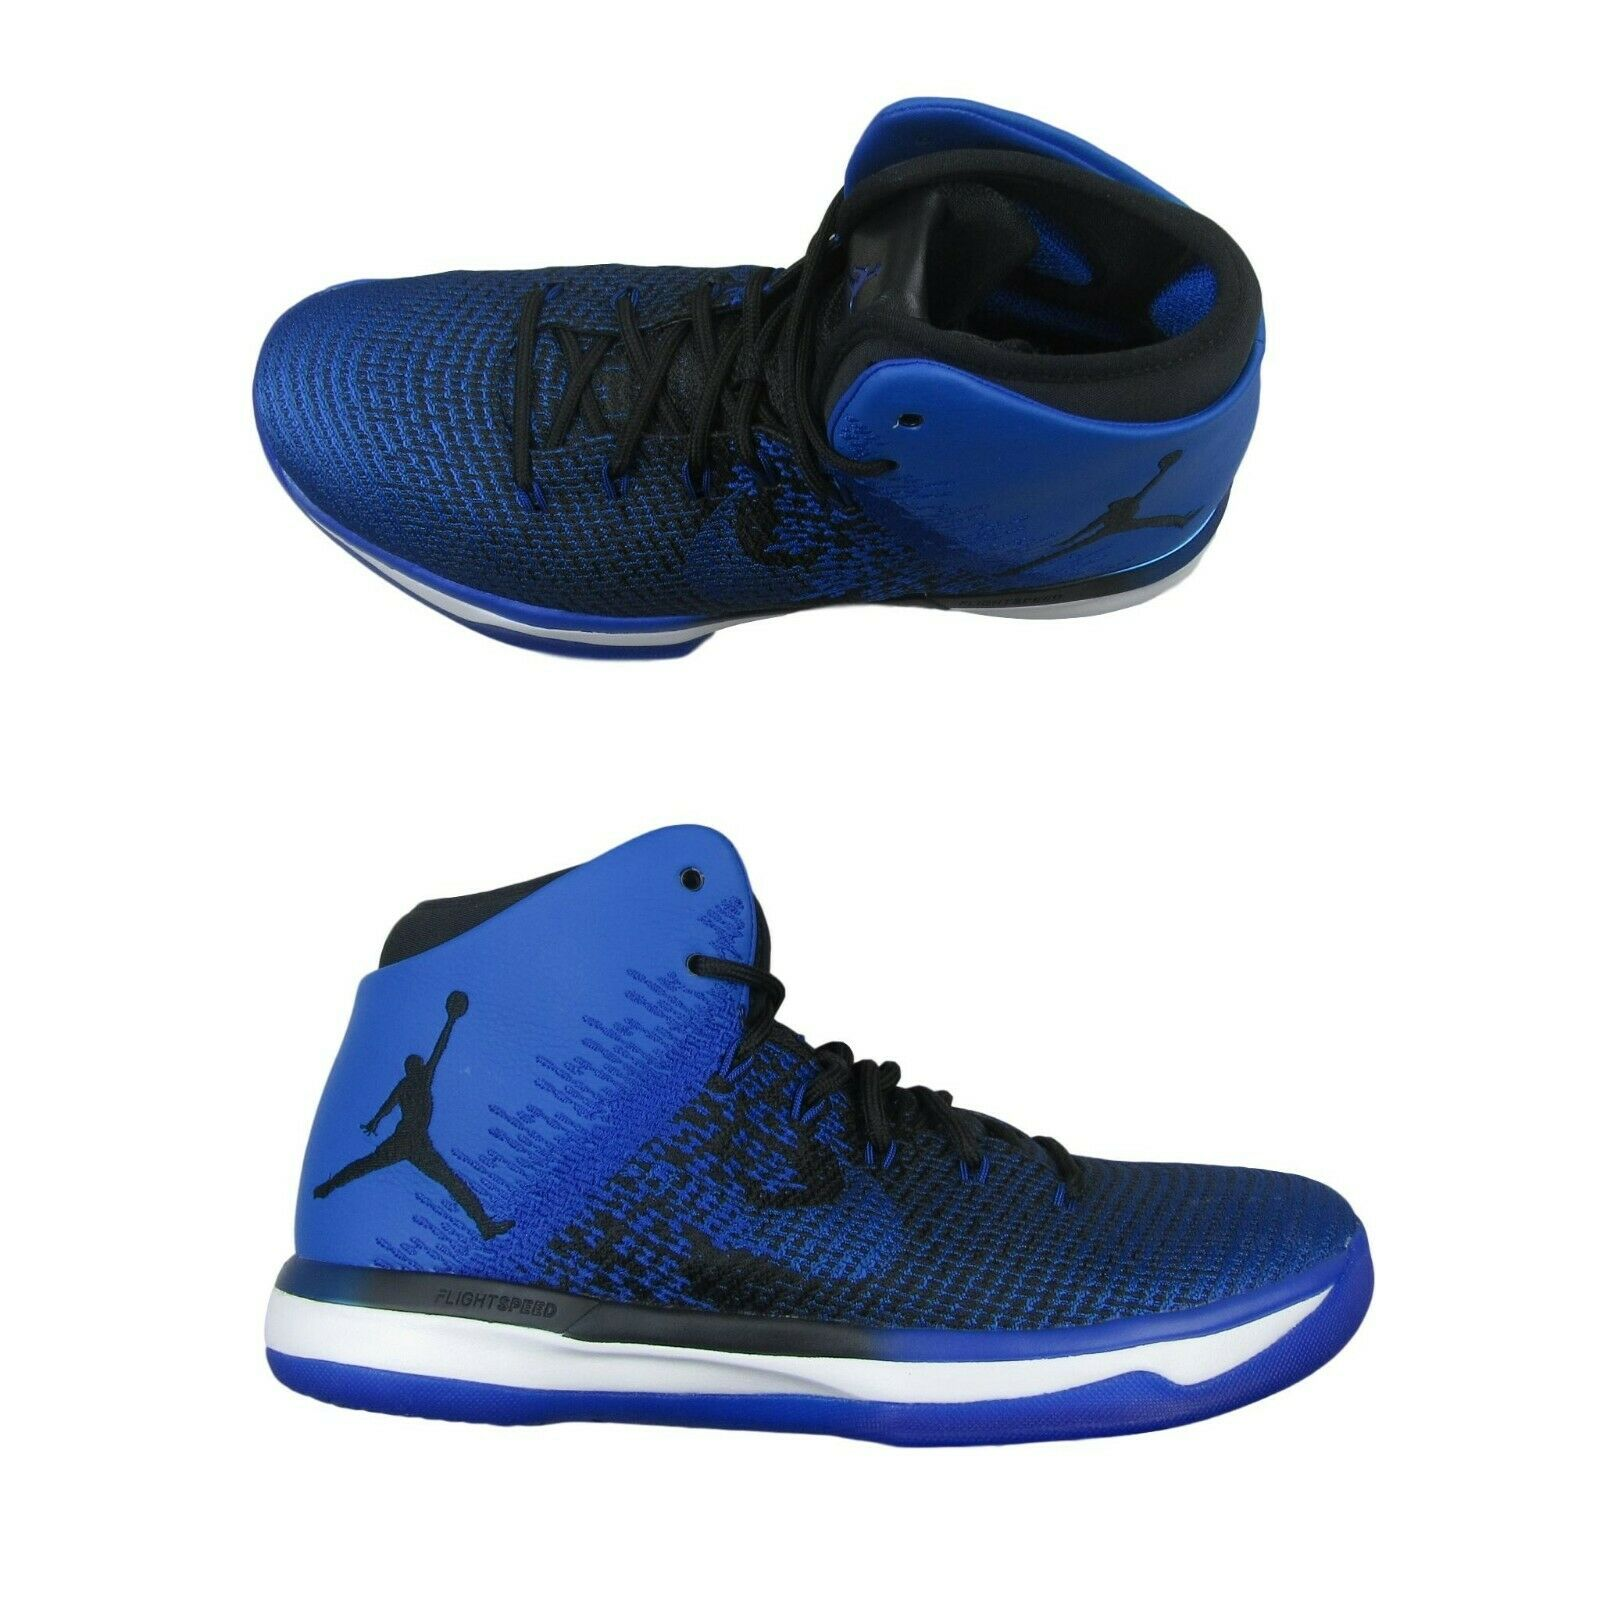 c2b3dc61dc84 Air Jordan XXXI 31 Black Royal Basketball Shoes Size 10 Mens 845037 ...